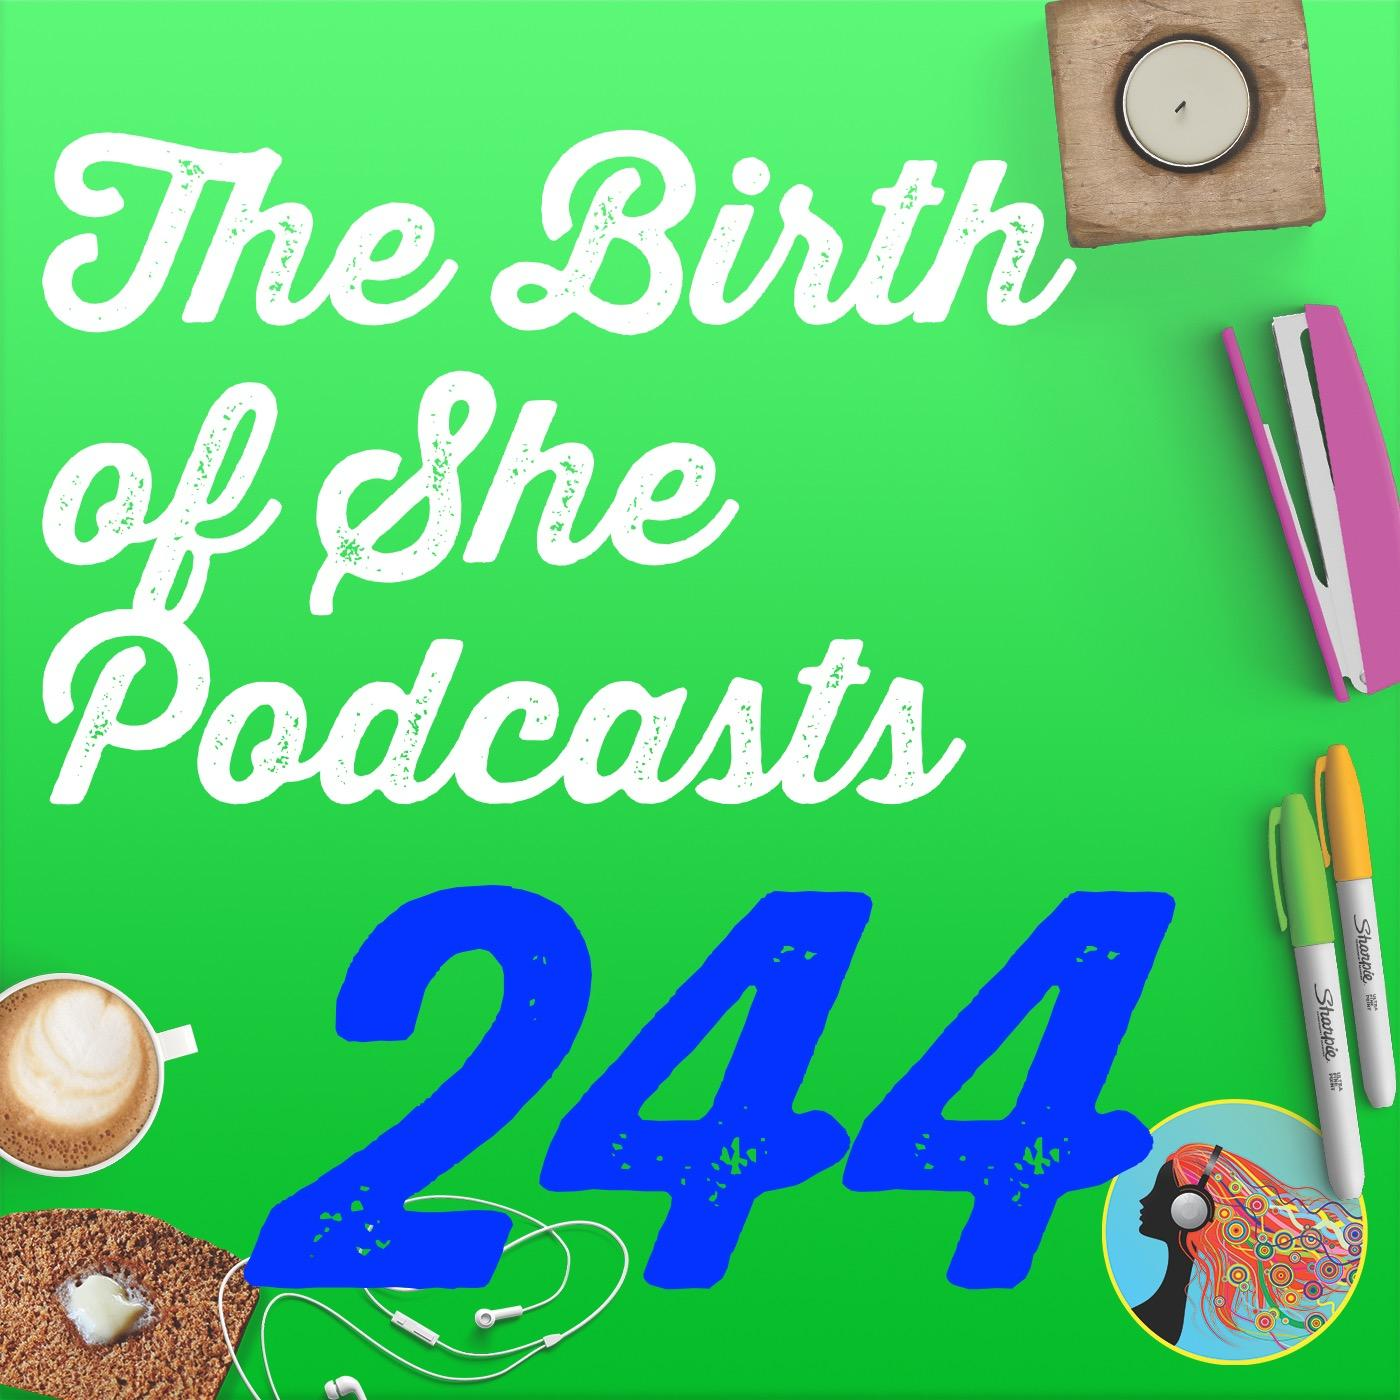 244 The Birth Of She Podcasts